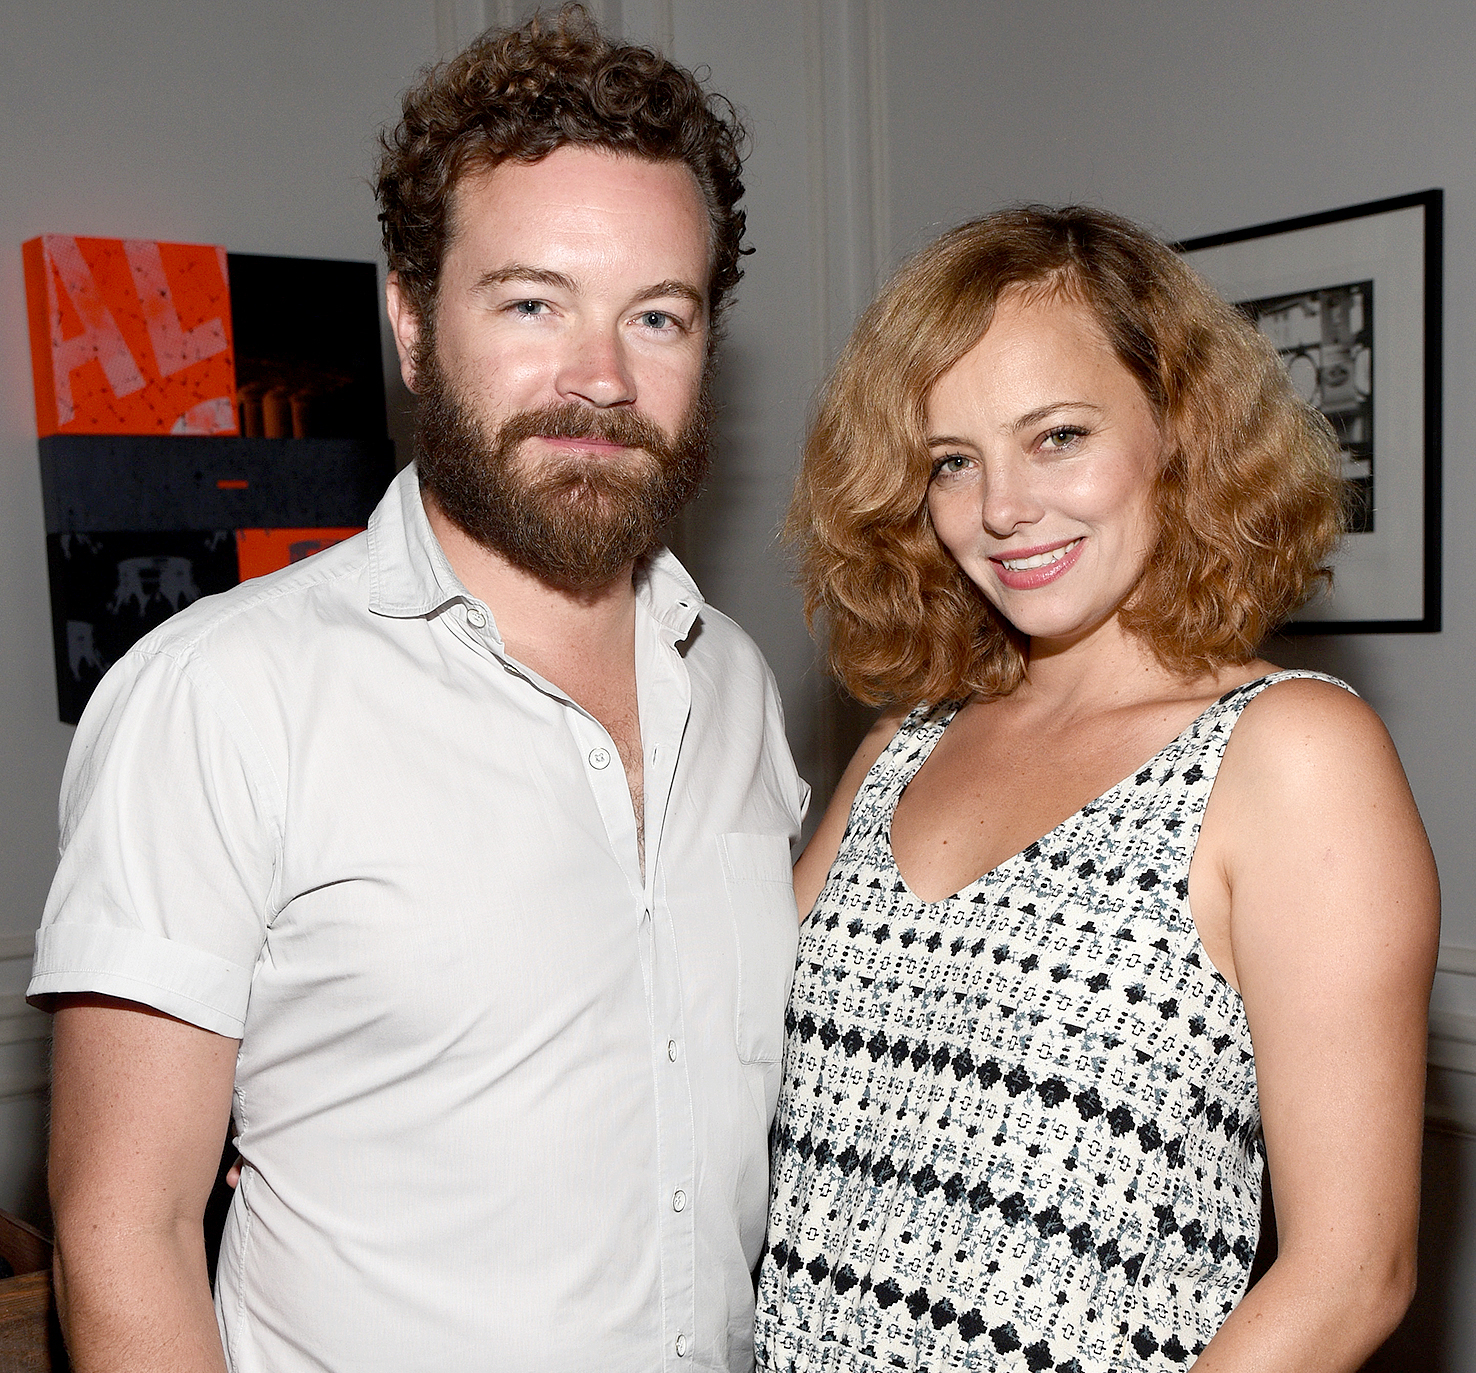 Who is danny masterson dating now